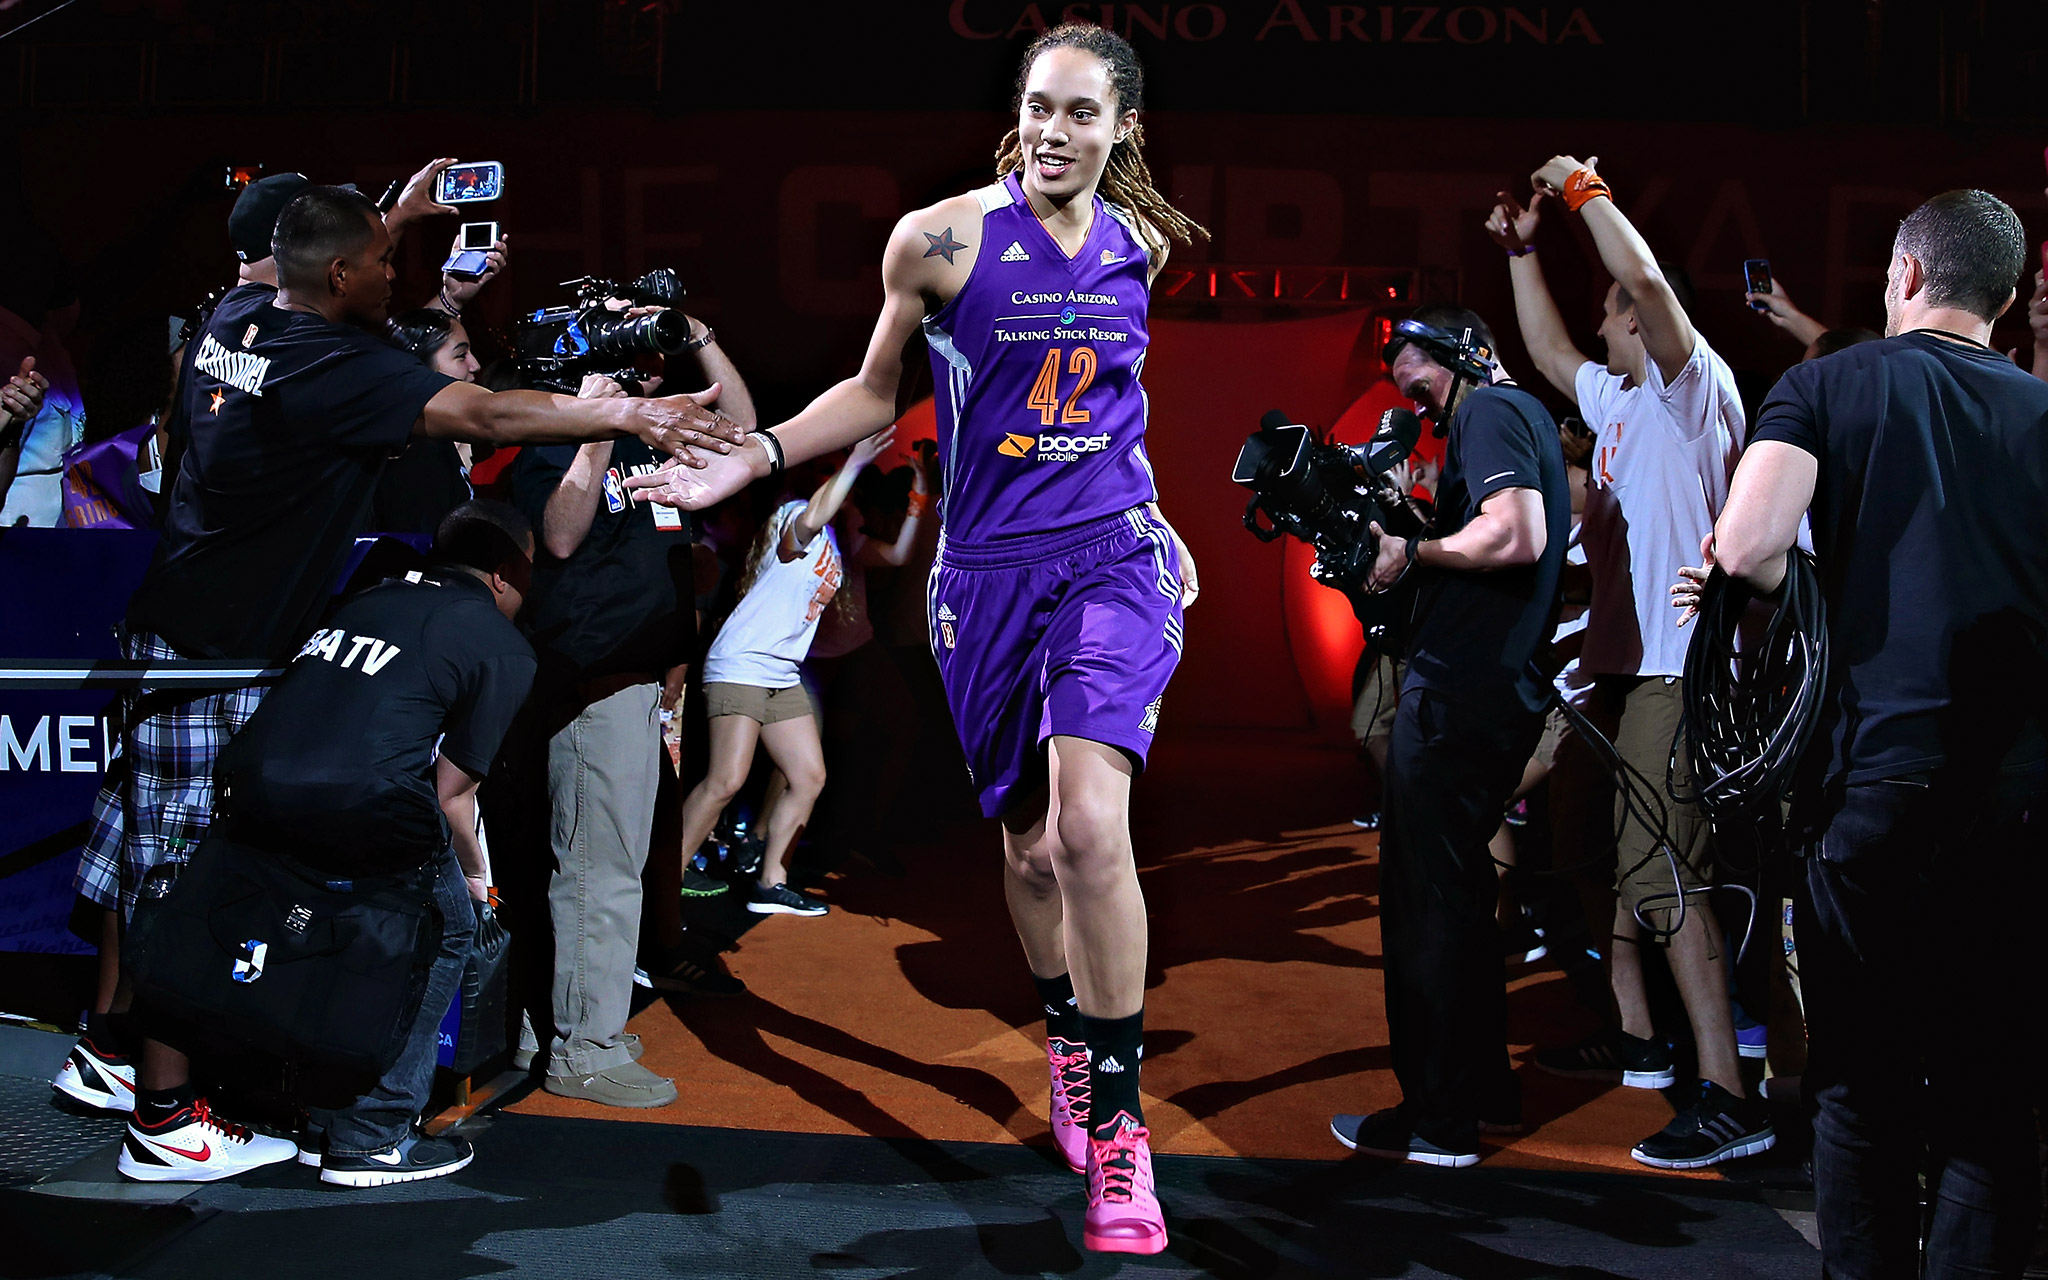 Western Conference All-Star Brittney Griner of the Phoenix Mercury is introduced at the WNBA All-Star Game at US Airways Center in Phoenix.